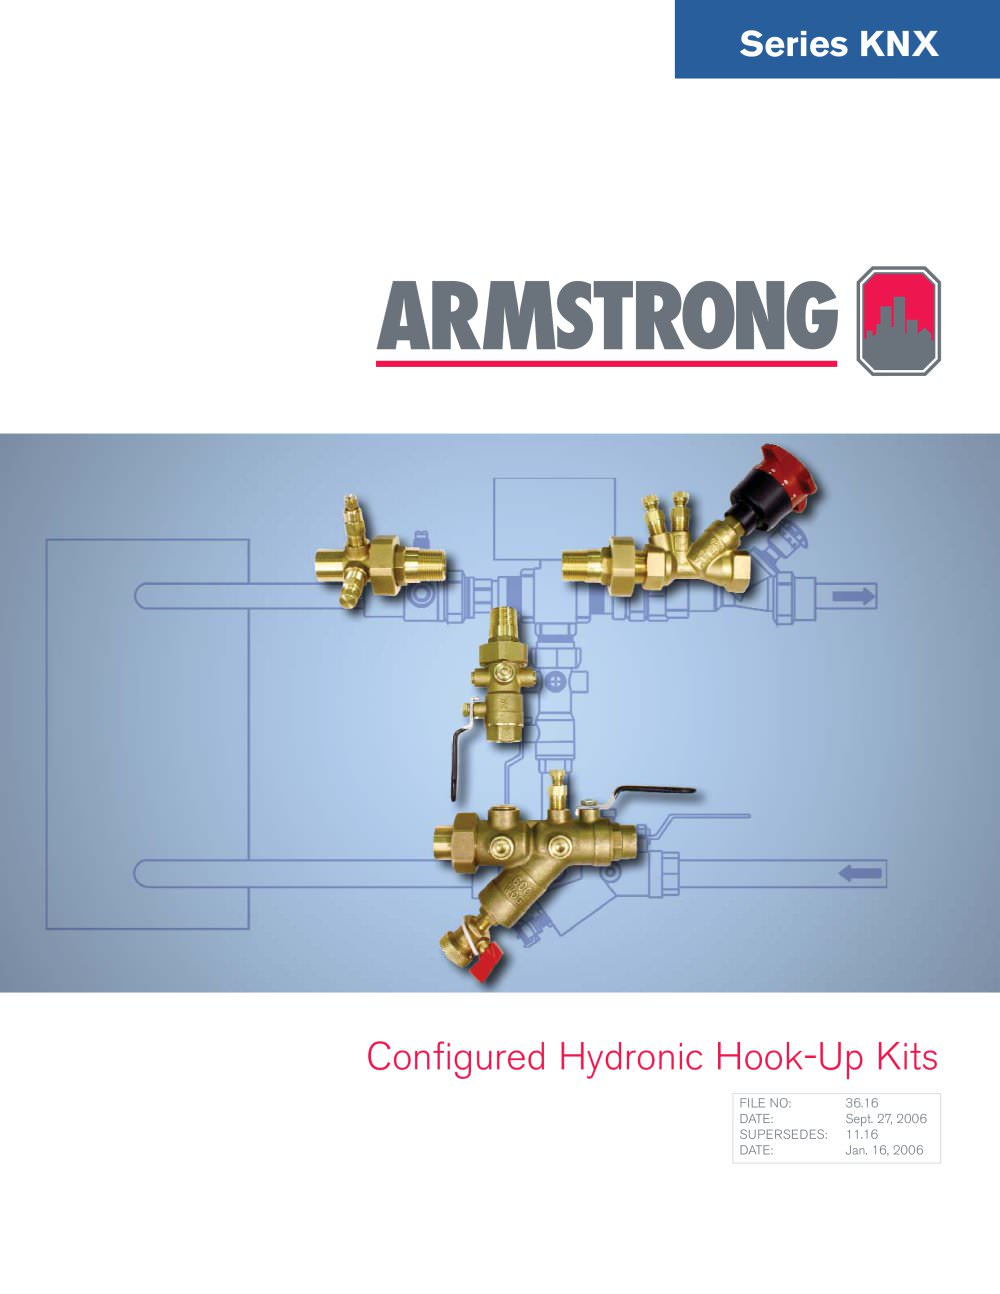 Knx Configured Hydronic Hook Up Kits S A Armstrong Limited Pdf Pump Motor Wiring Diagram 1 2 Pages